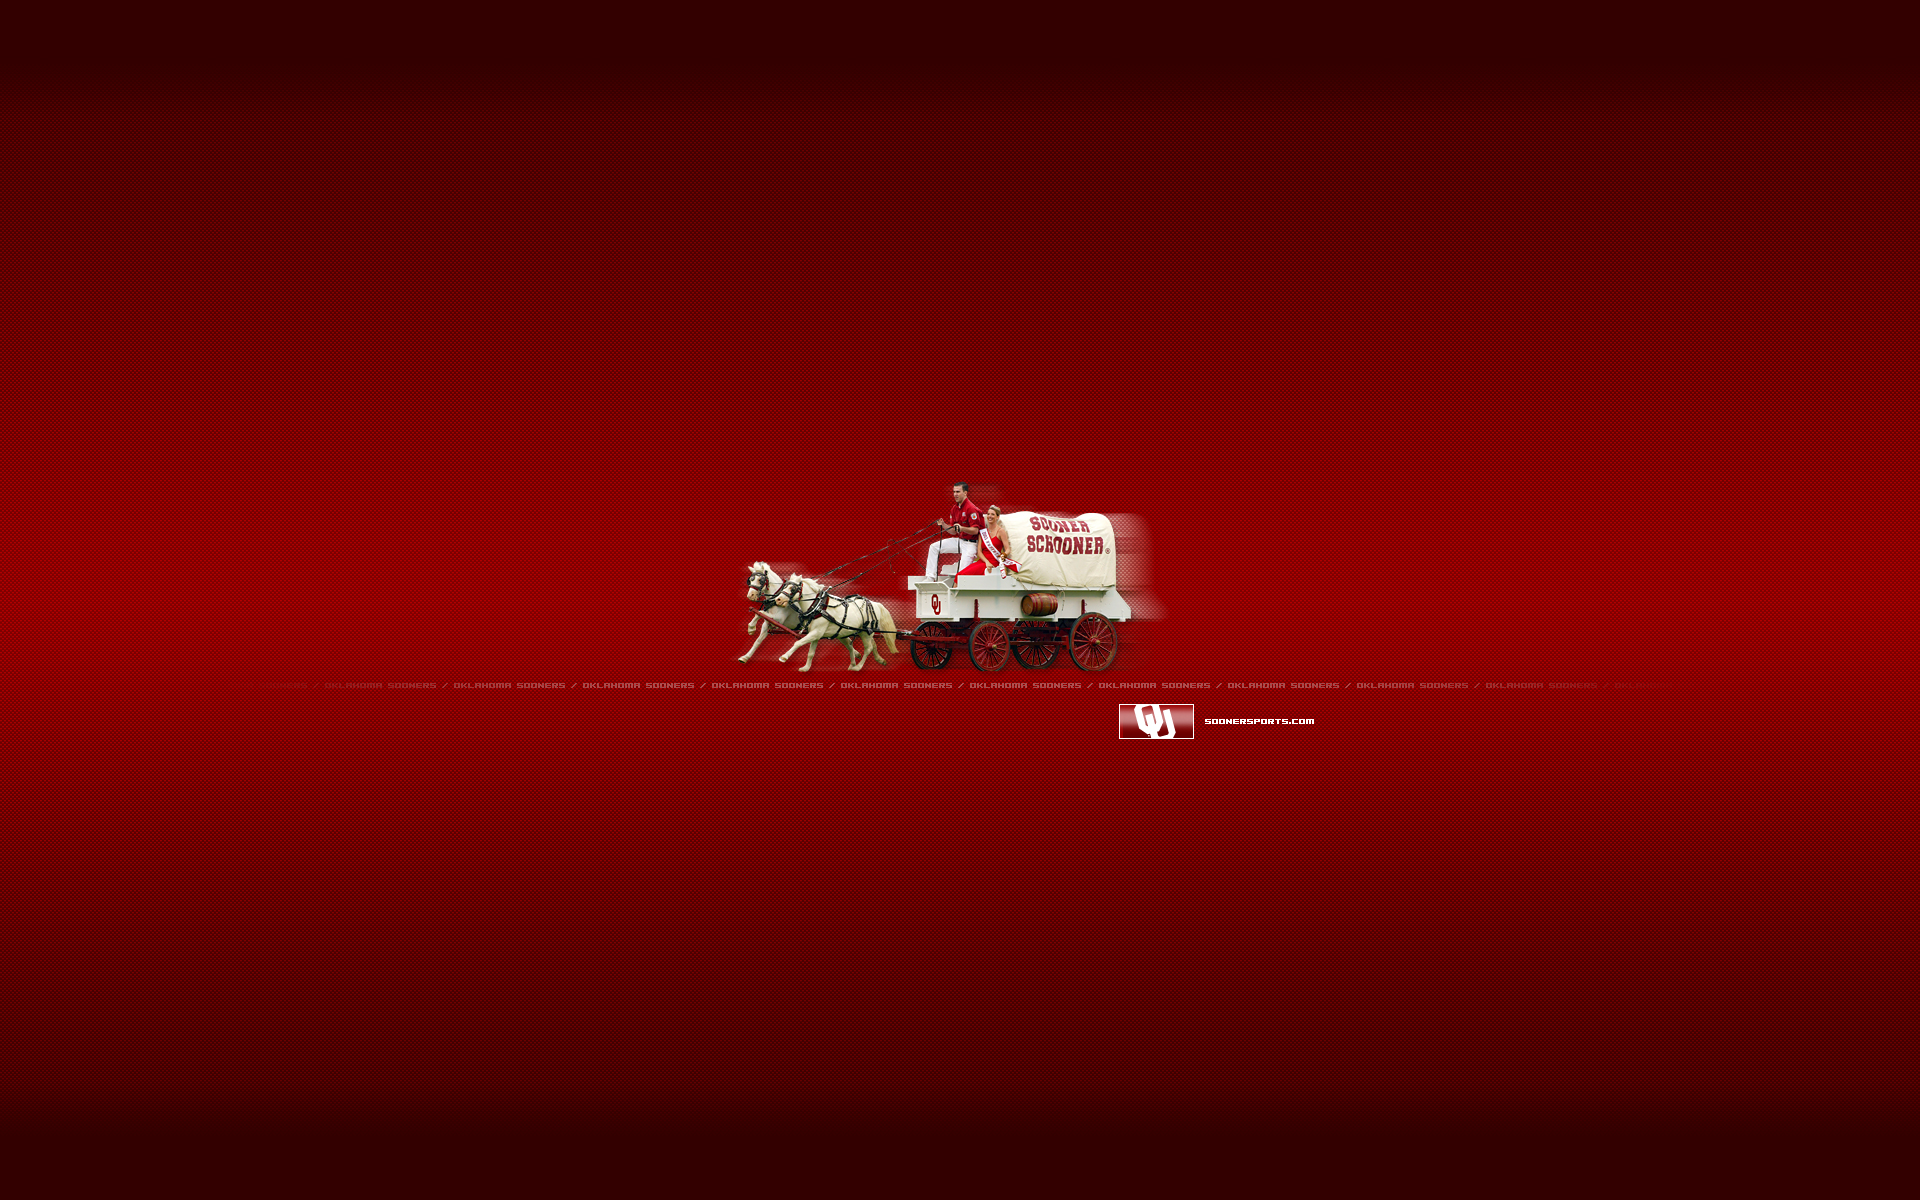 Oklahoma Sooners wallpaper   187112 1920x1200